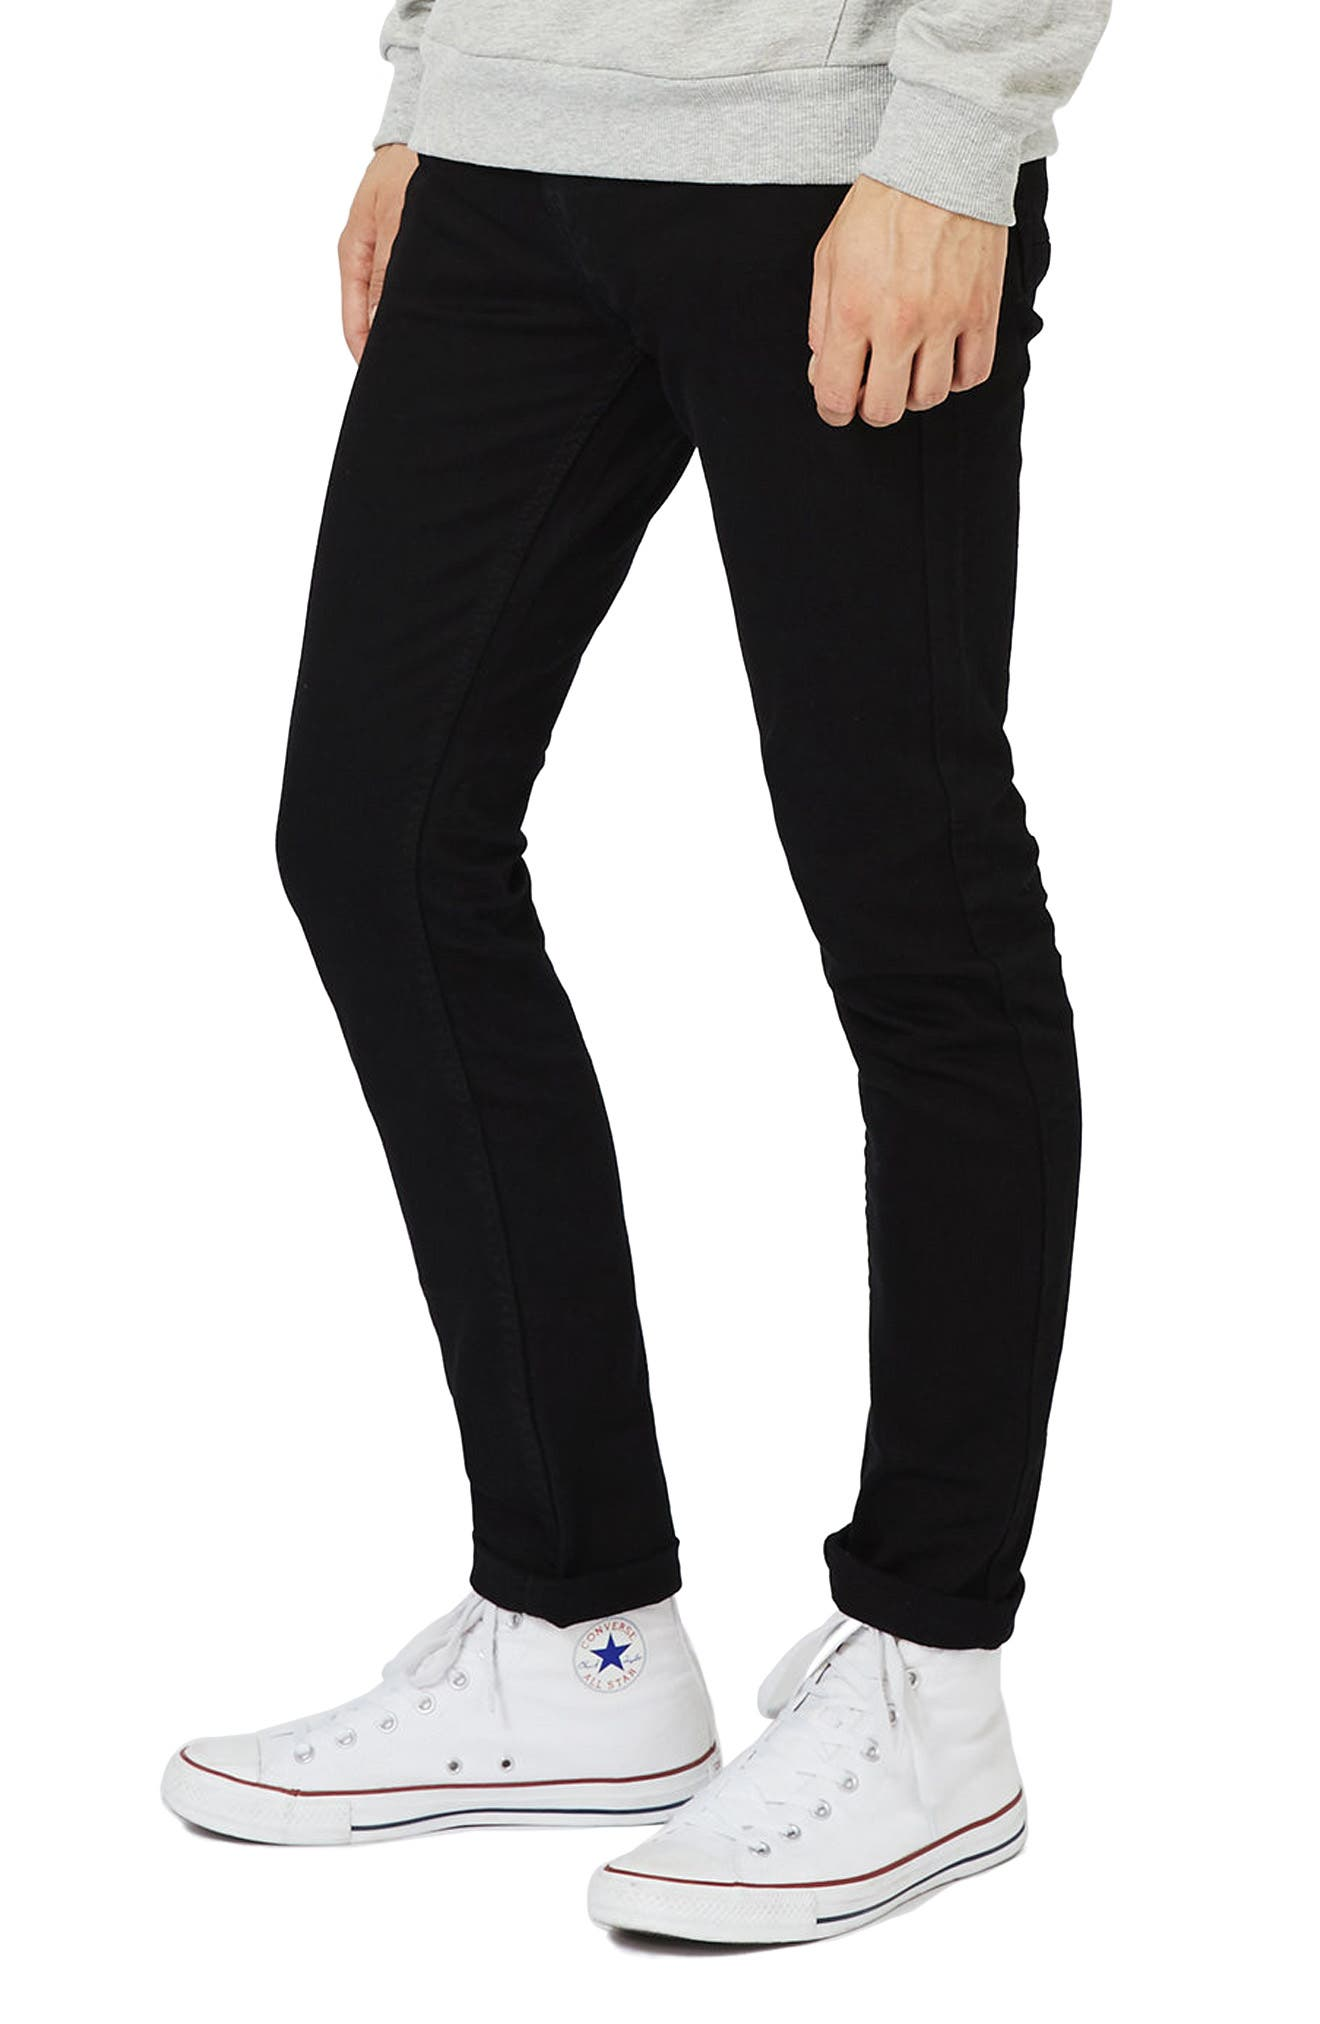 TOPMAN Skinny Stretch Jeans, Main, color, BLACK